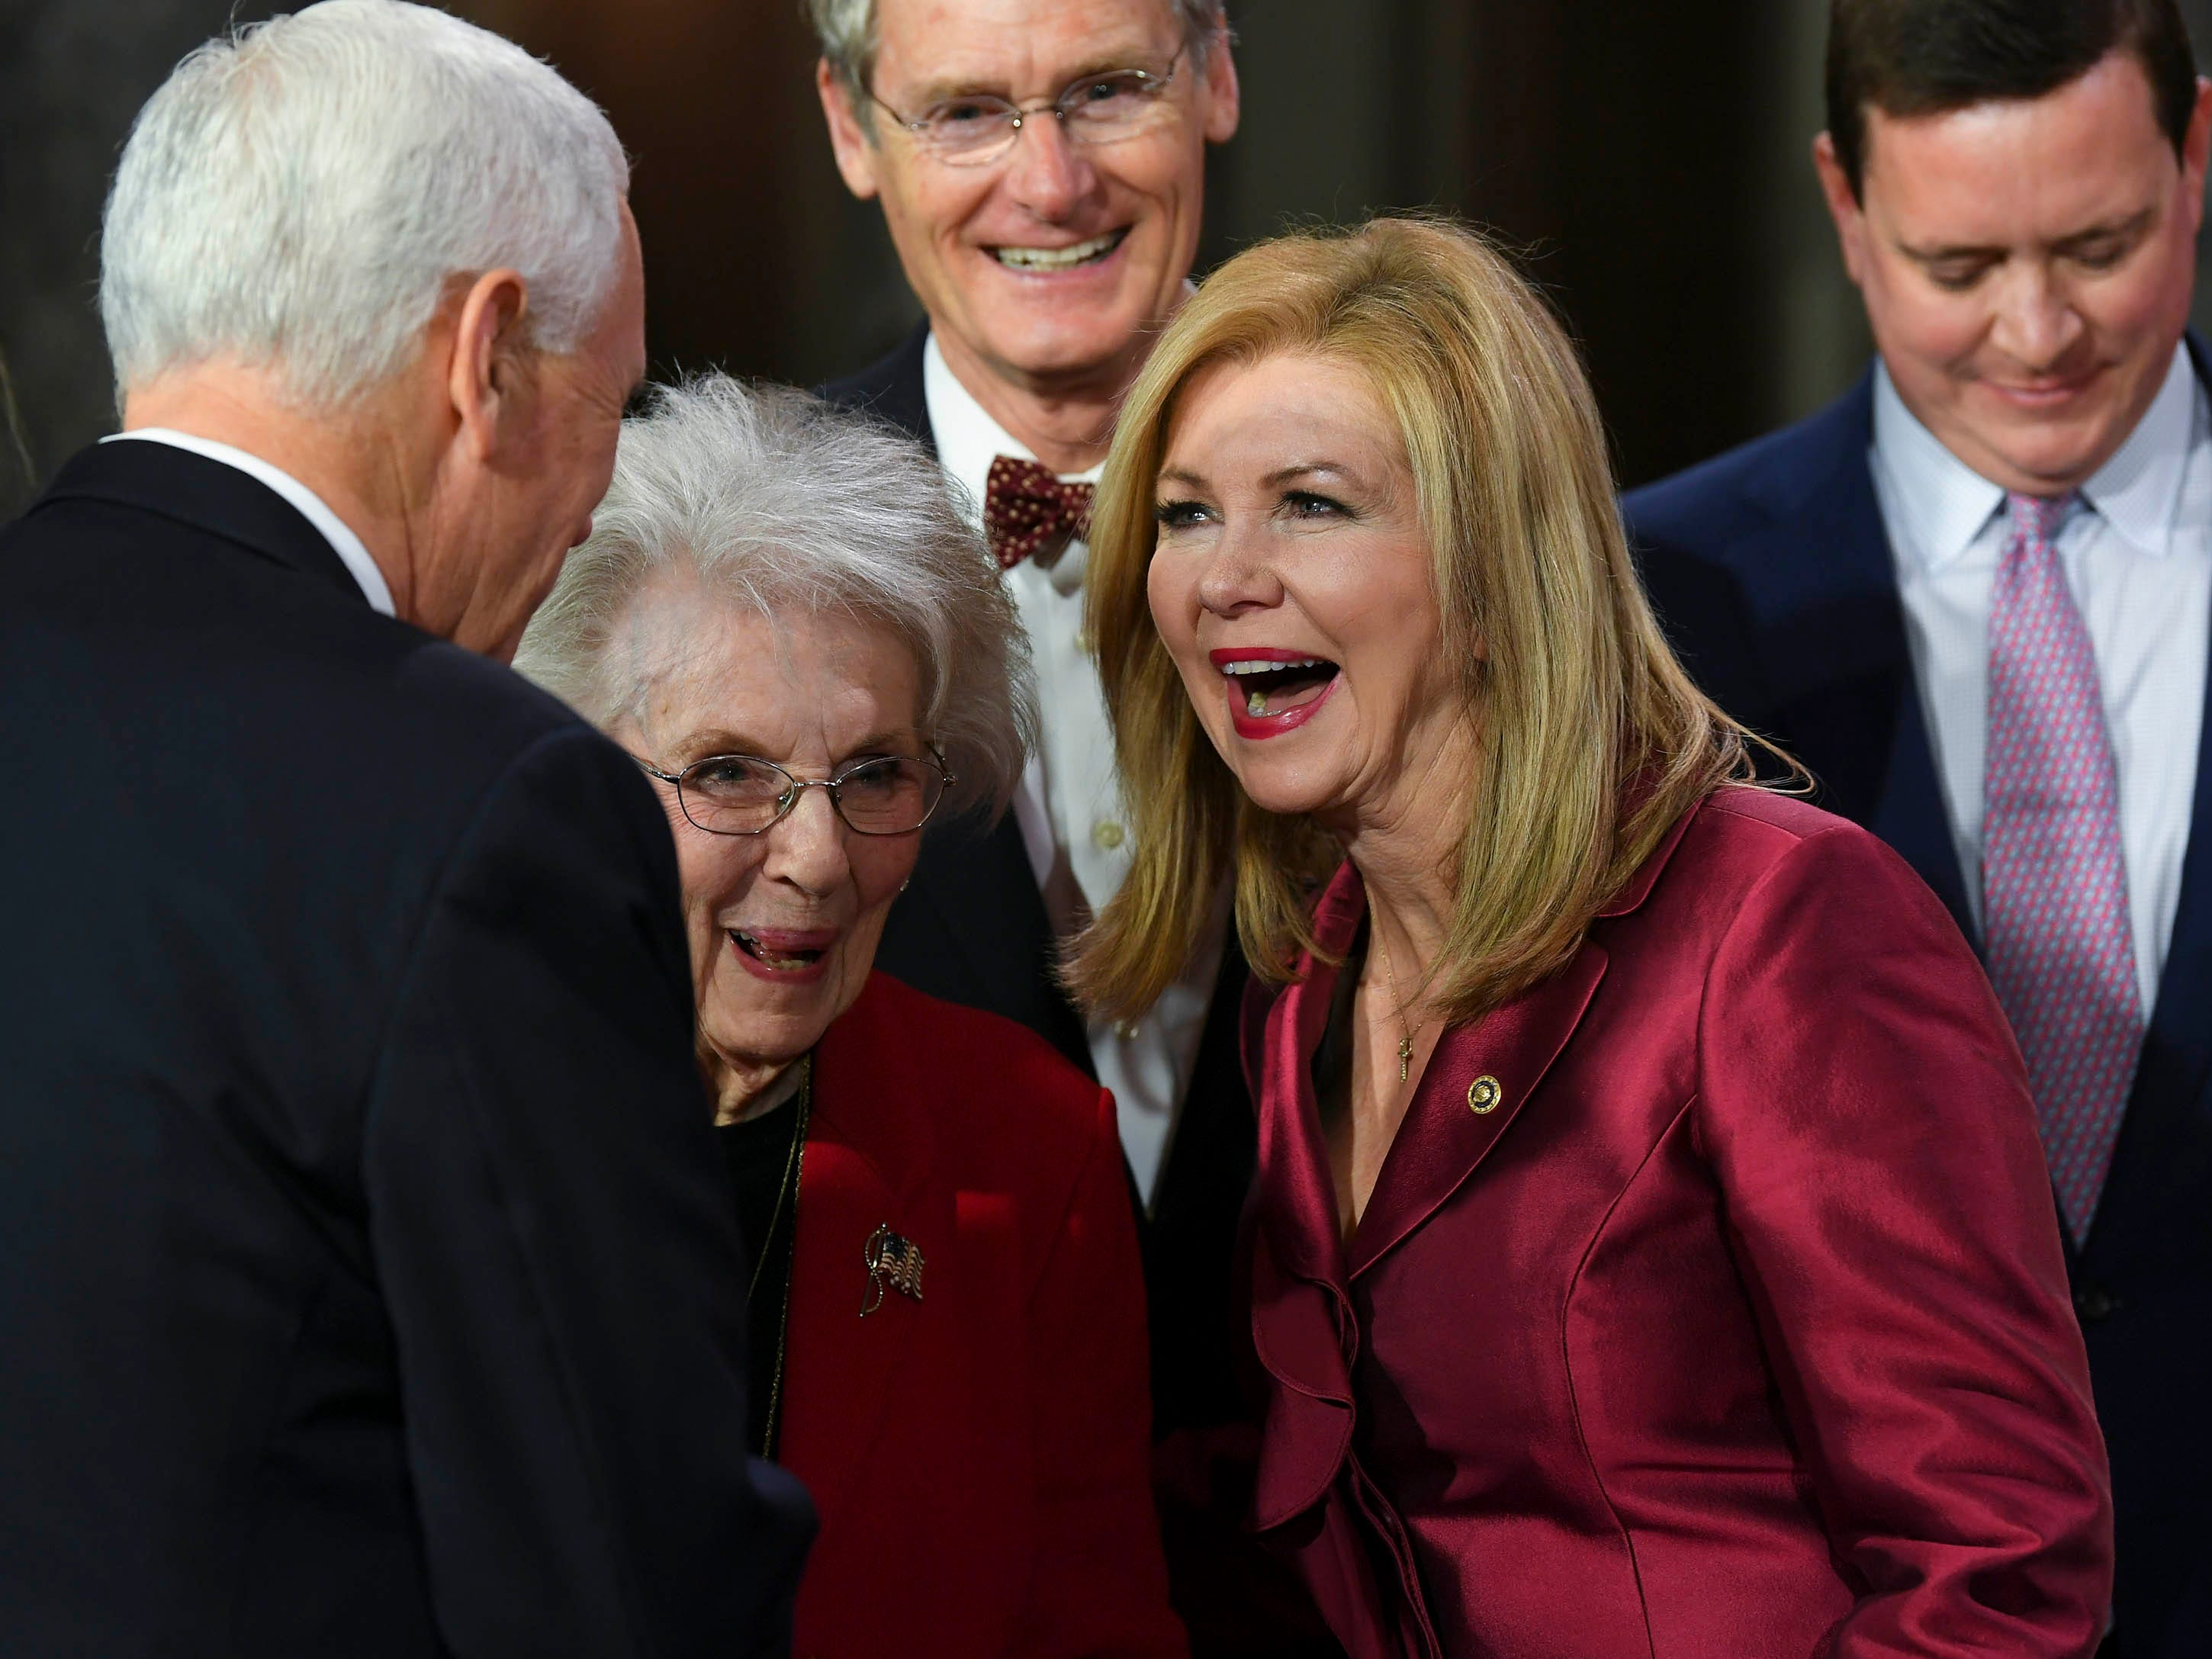 Vice President Mike Pence greets Marsha Blackburn before he officiates the ceremonial swearing-in in the Old Senate Chambers at the U.S. Capitol as she becomes Tennessee's first female United States Senator.